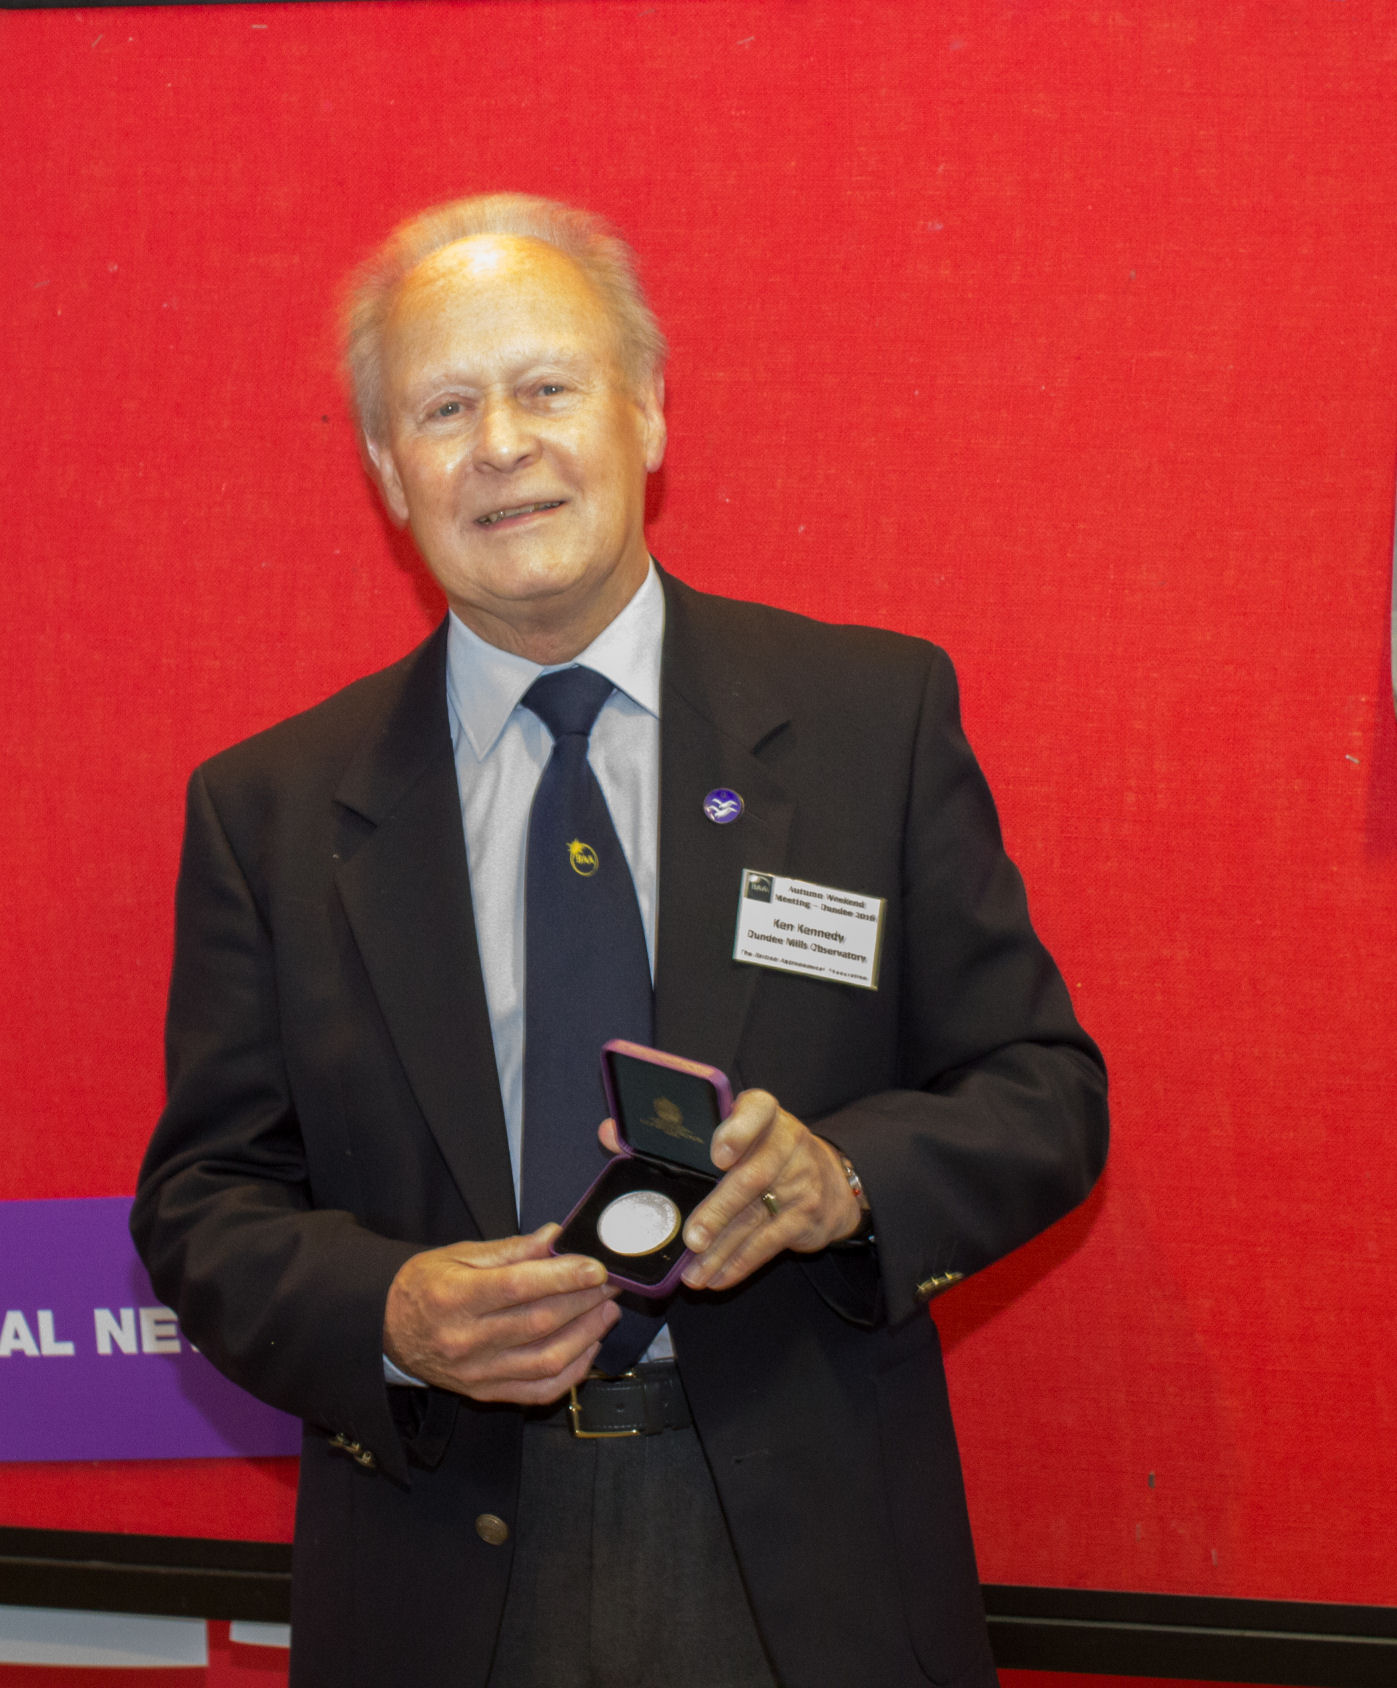 Ken with his Lydia Brown Medal.  Congratulations, Ken, on a well deserved award